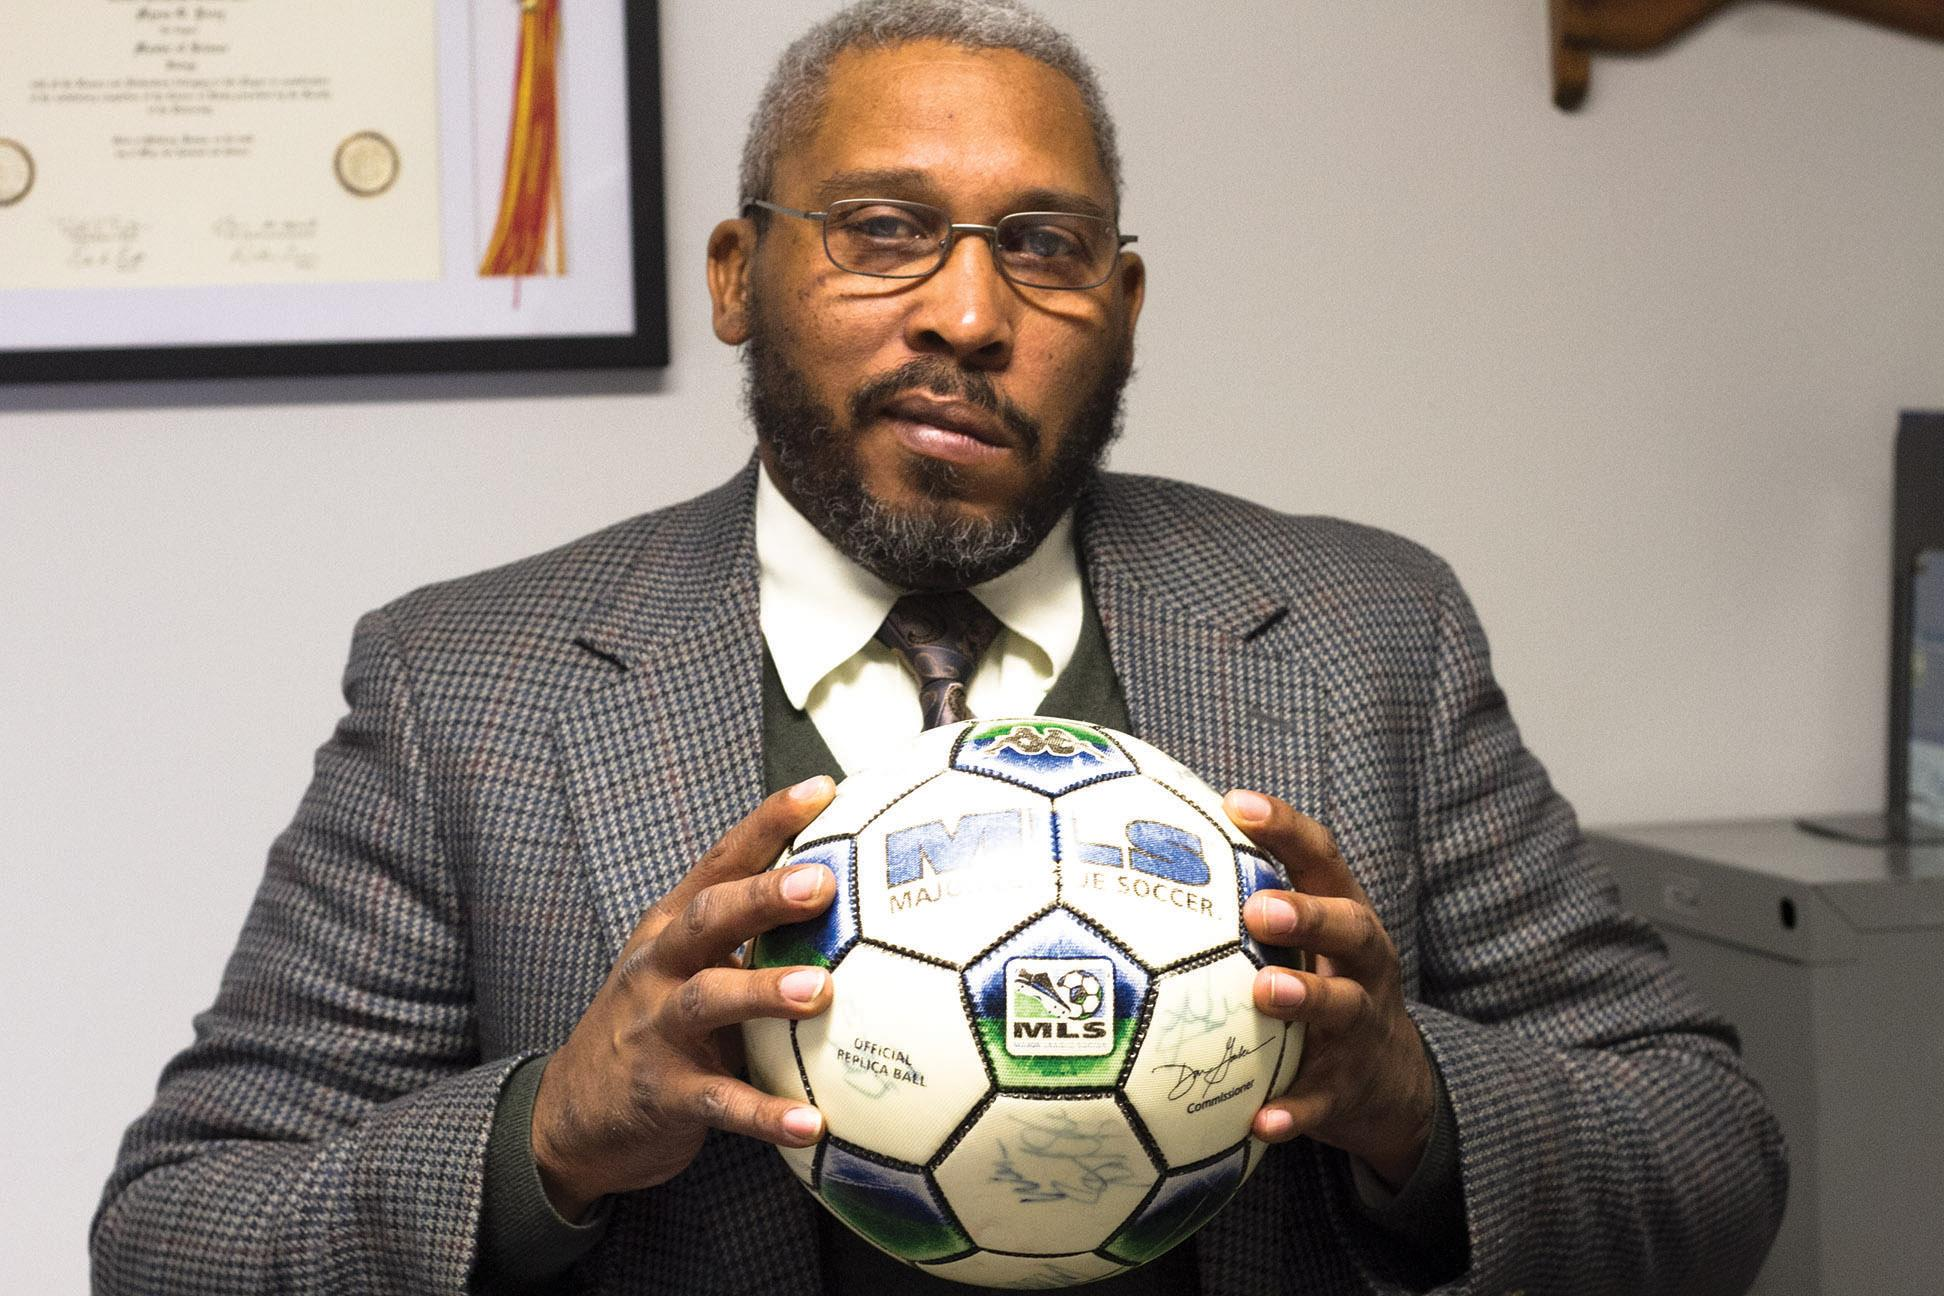 Professional soccer player now a professor